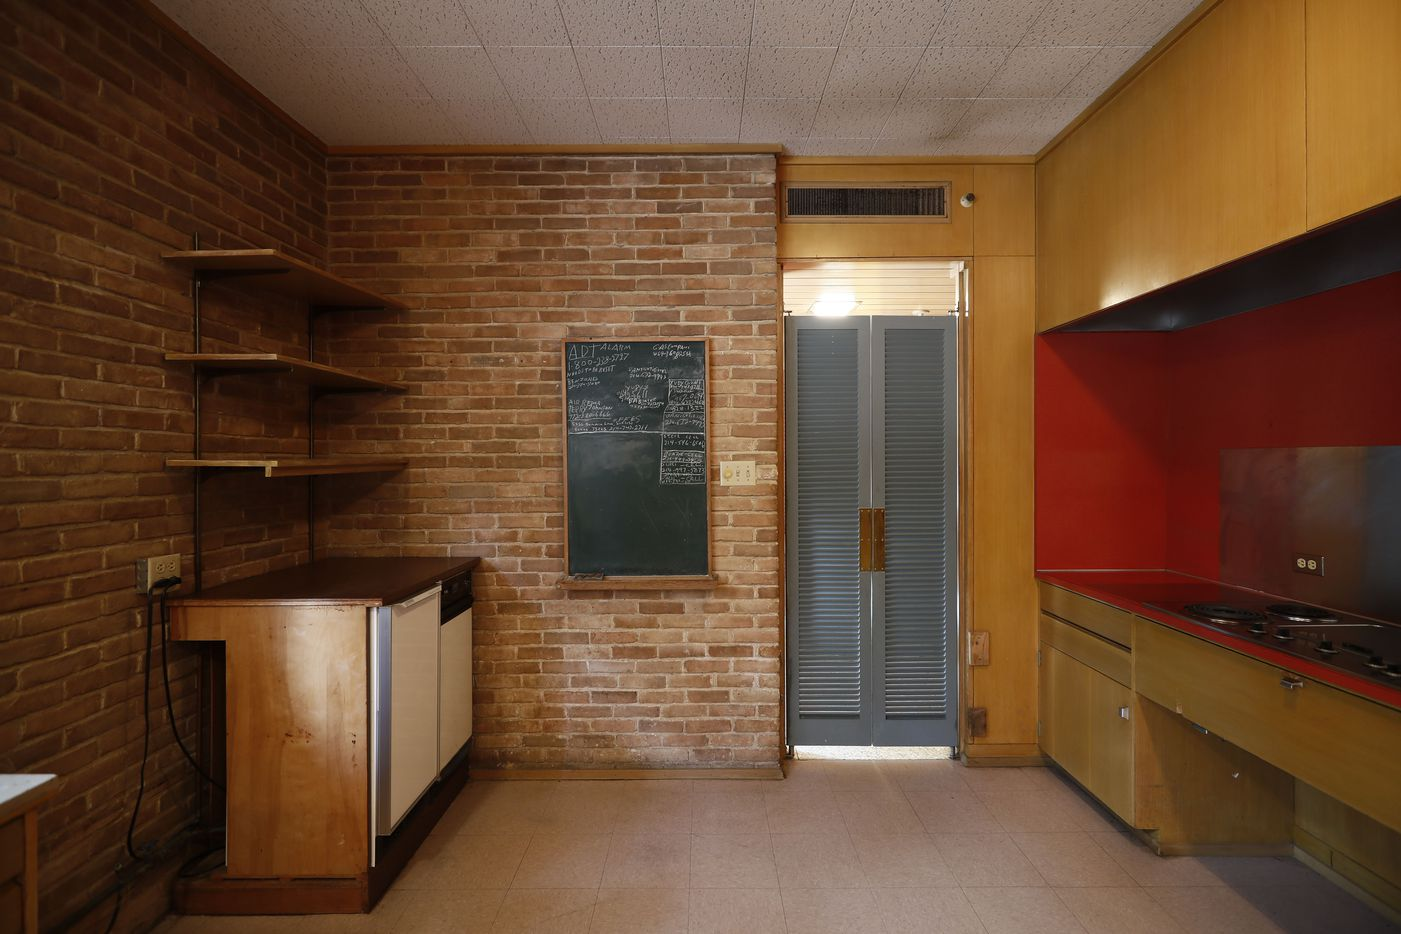 The exposed Mexican brick is integral to the house, even in the kitchen.